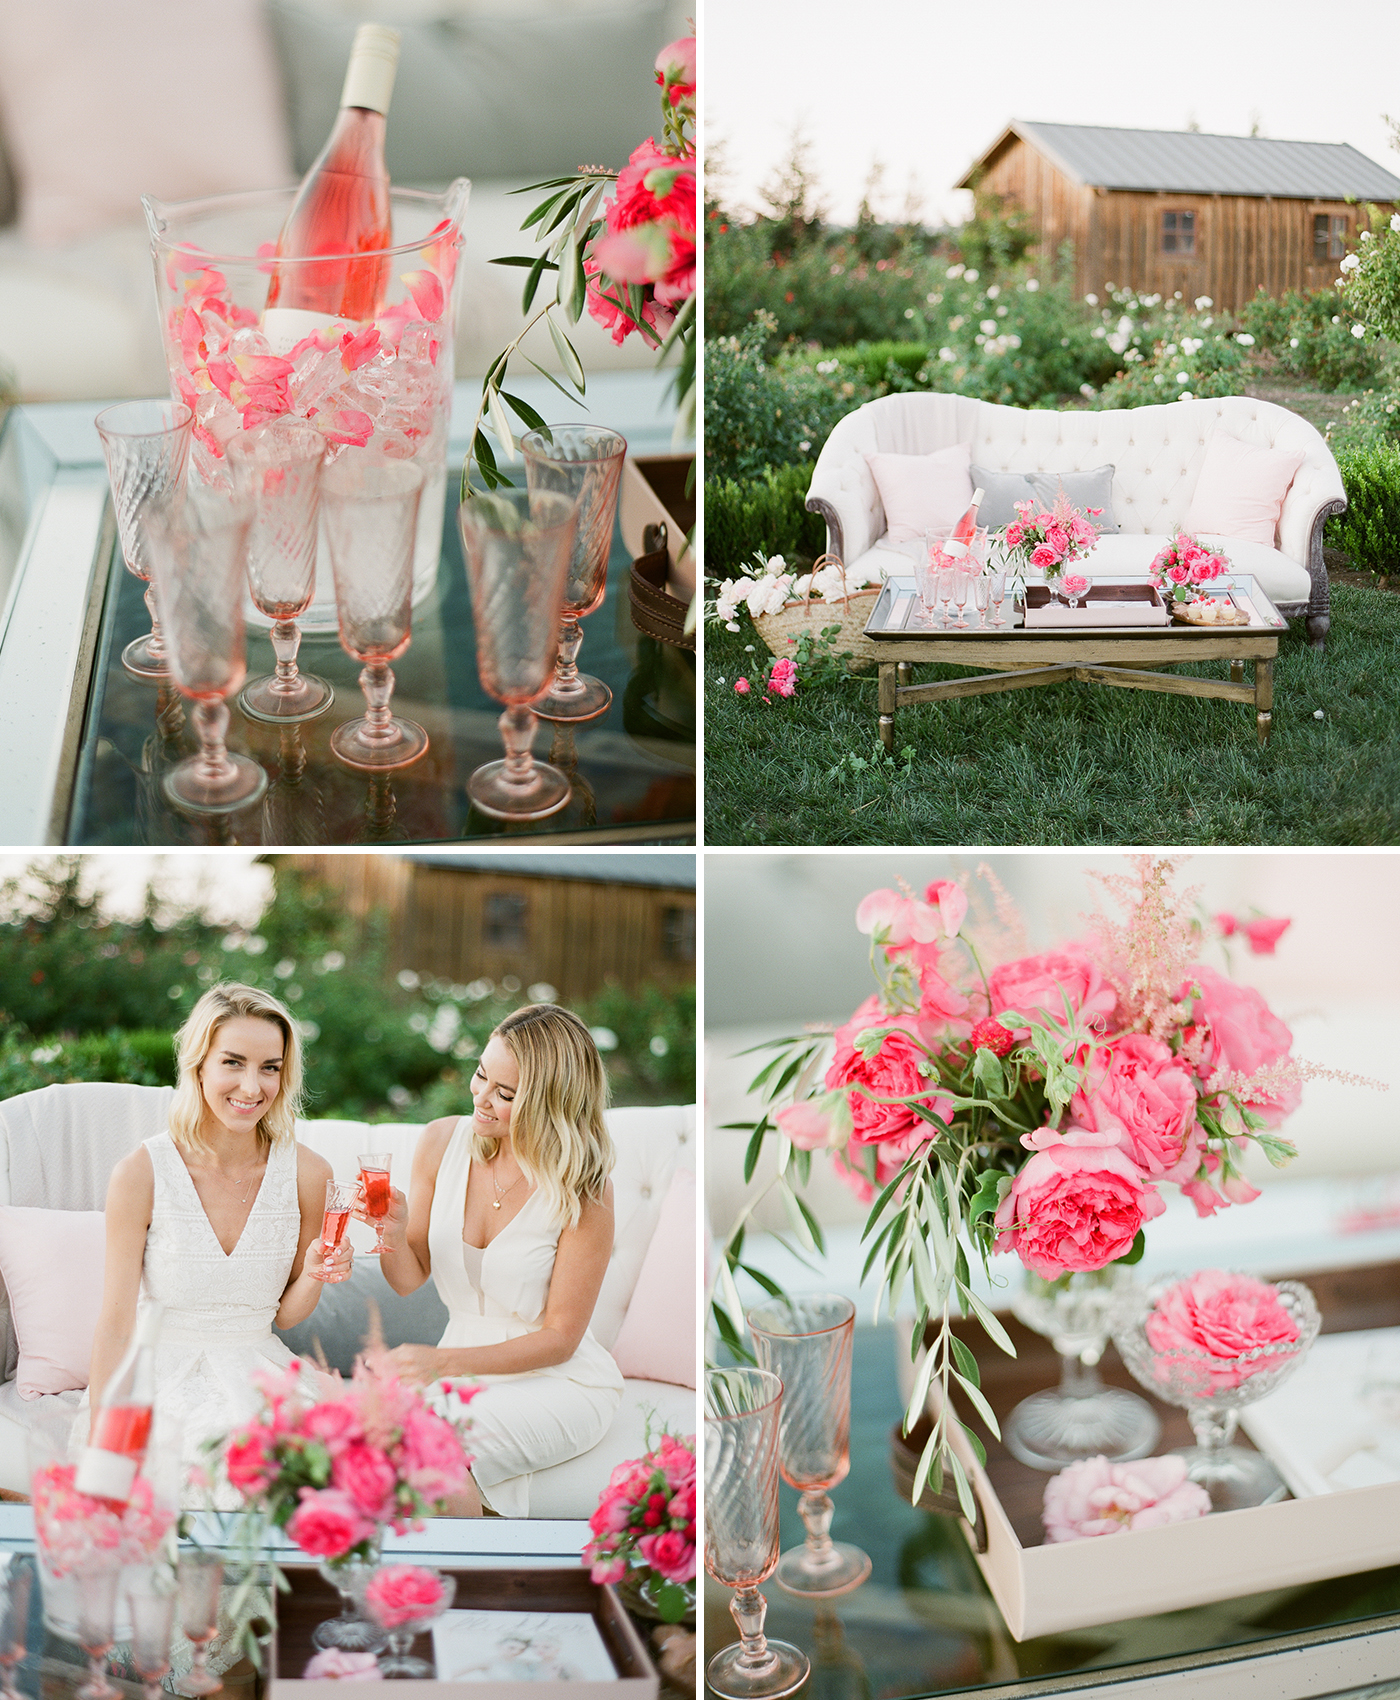 fashion to table with lauren conrad and maura mcmanus16